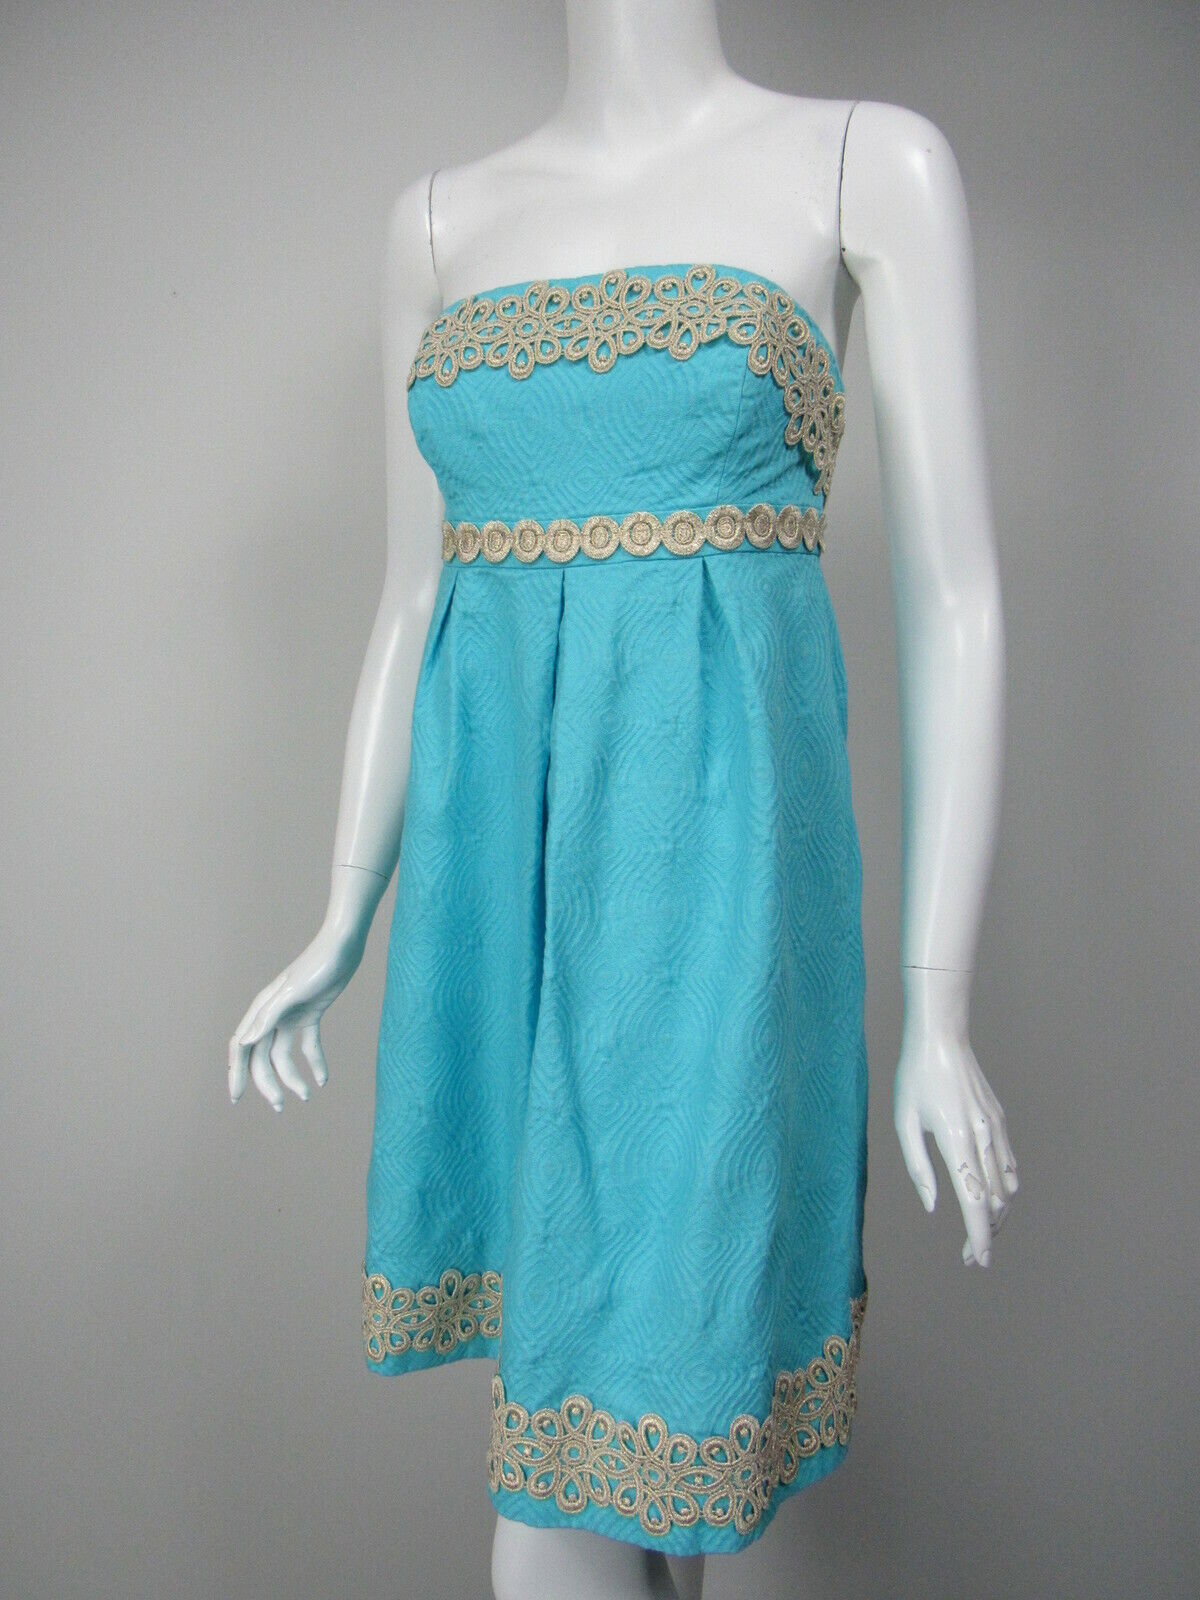 LILLY PULITZER Betsey Turquoise Jacquard or Metallic Lace Strapless Robe 00